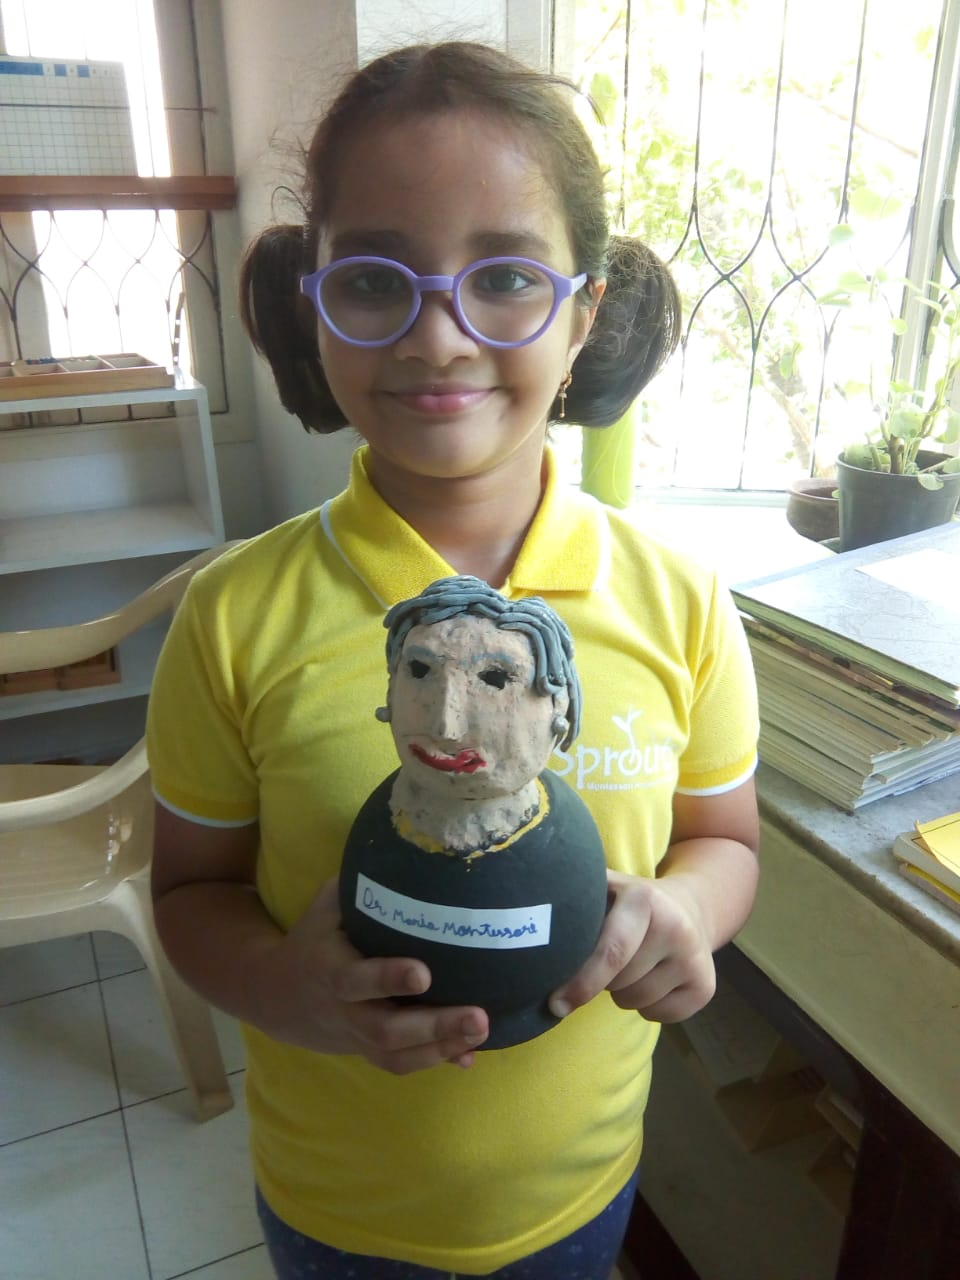 Madhu displaying a model of Dr